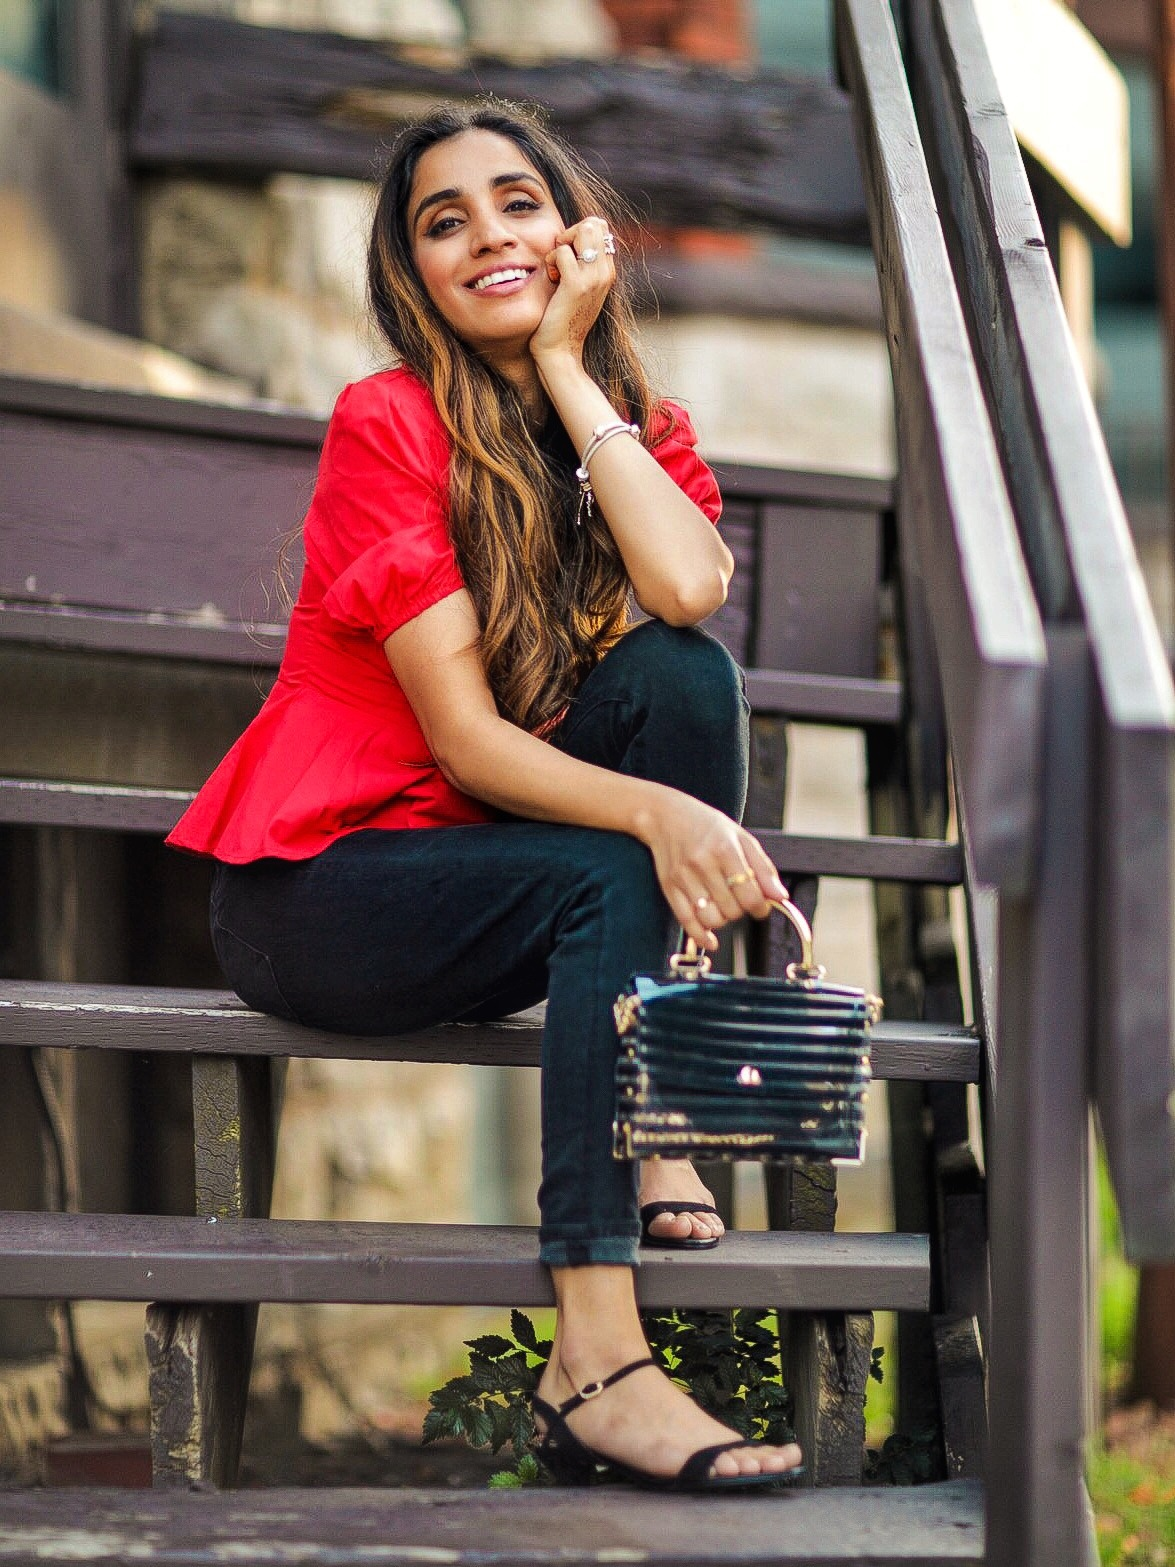 Puffy Sleeves Everyone's Raving About SHEIN Square Neck Button Front Peplum Tea Top Faiza Inam SincerelyHumble Summer Fashion 8